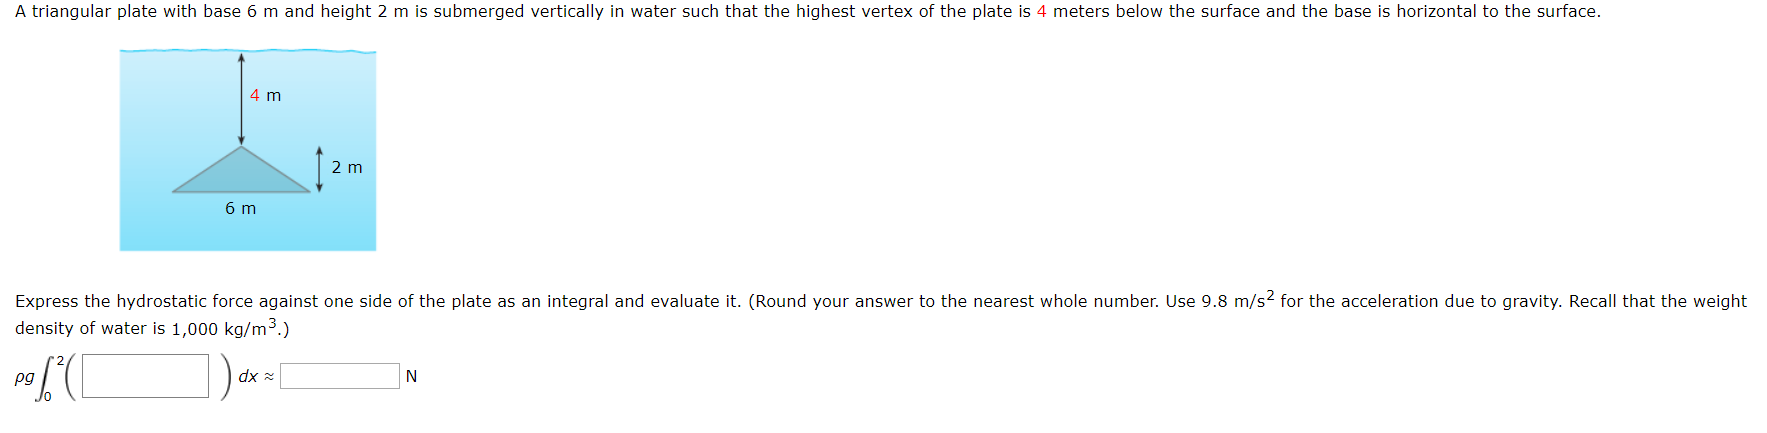 A triangular plate with base 6 m and height 2 m is submerged vertically in water such that the highest vertex of the plate is 4 meters below the surface and the base is horizontal to the surface. 4 m 2 m 6 m Express the hydrostatic force against one side of the plate as an integral and evaluate it. (Round your answer to the nearest whole number. Use 9.8 m/s2 for the acceleration due to gravity. Recall that the weight density of water is 1,000 kg/m3.) dx N pg